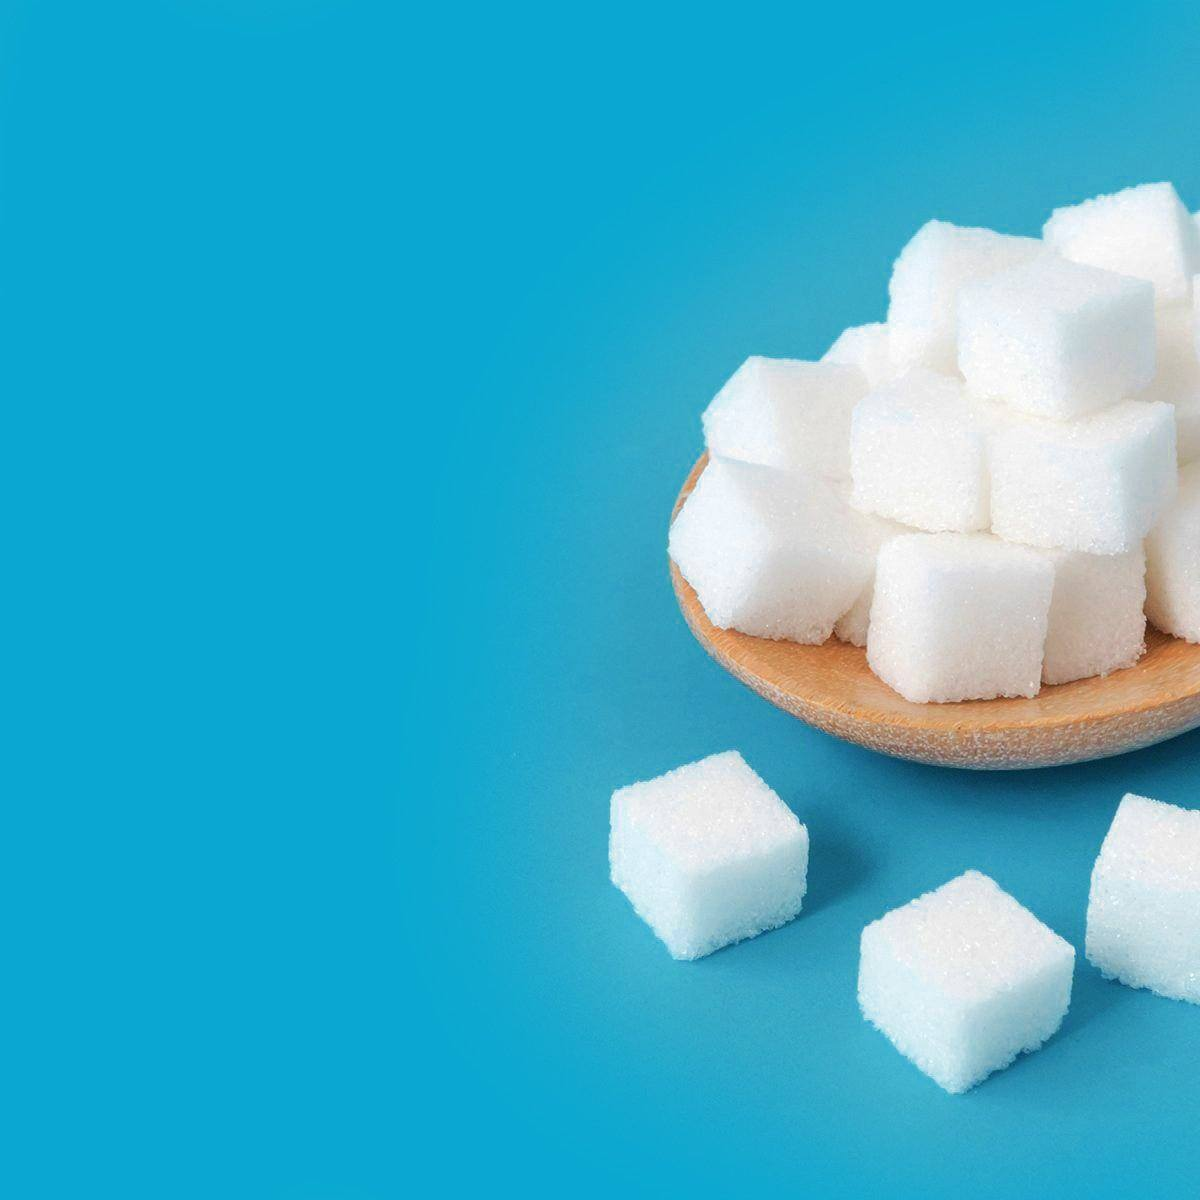 6 Benefits of a Low-Sugar Diet